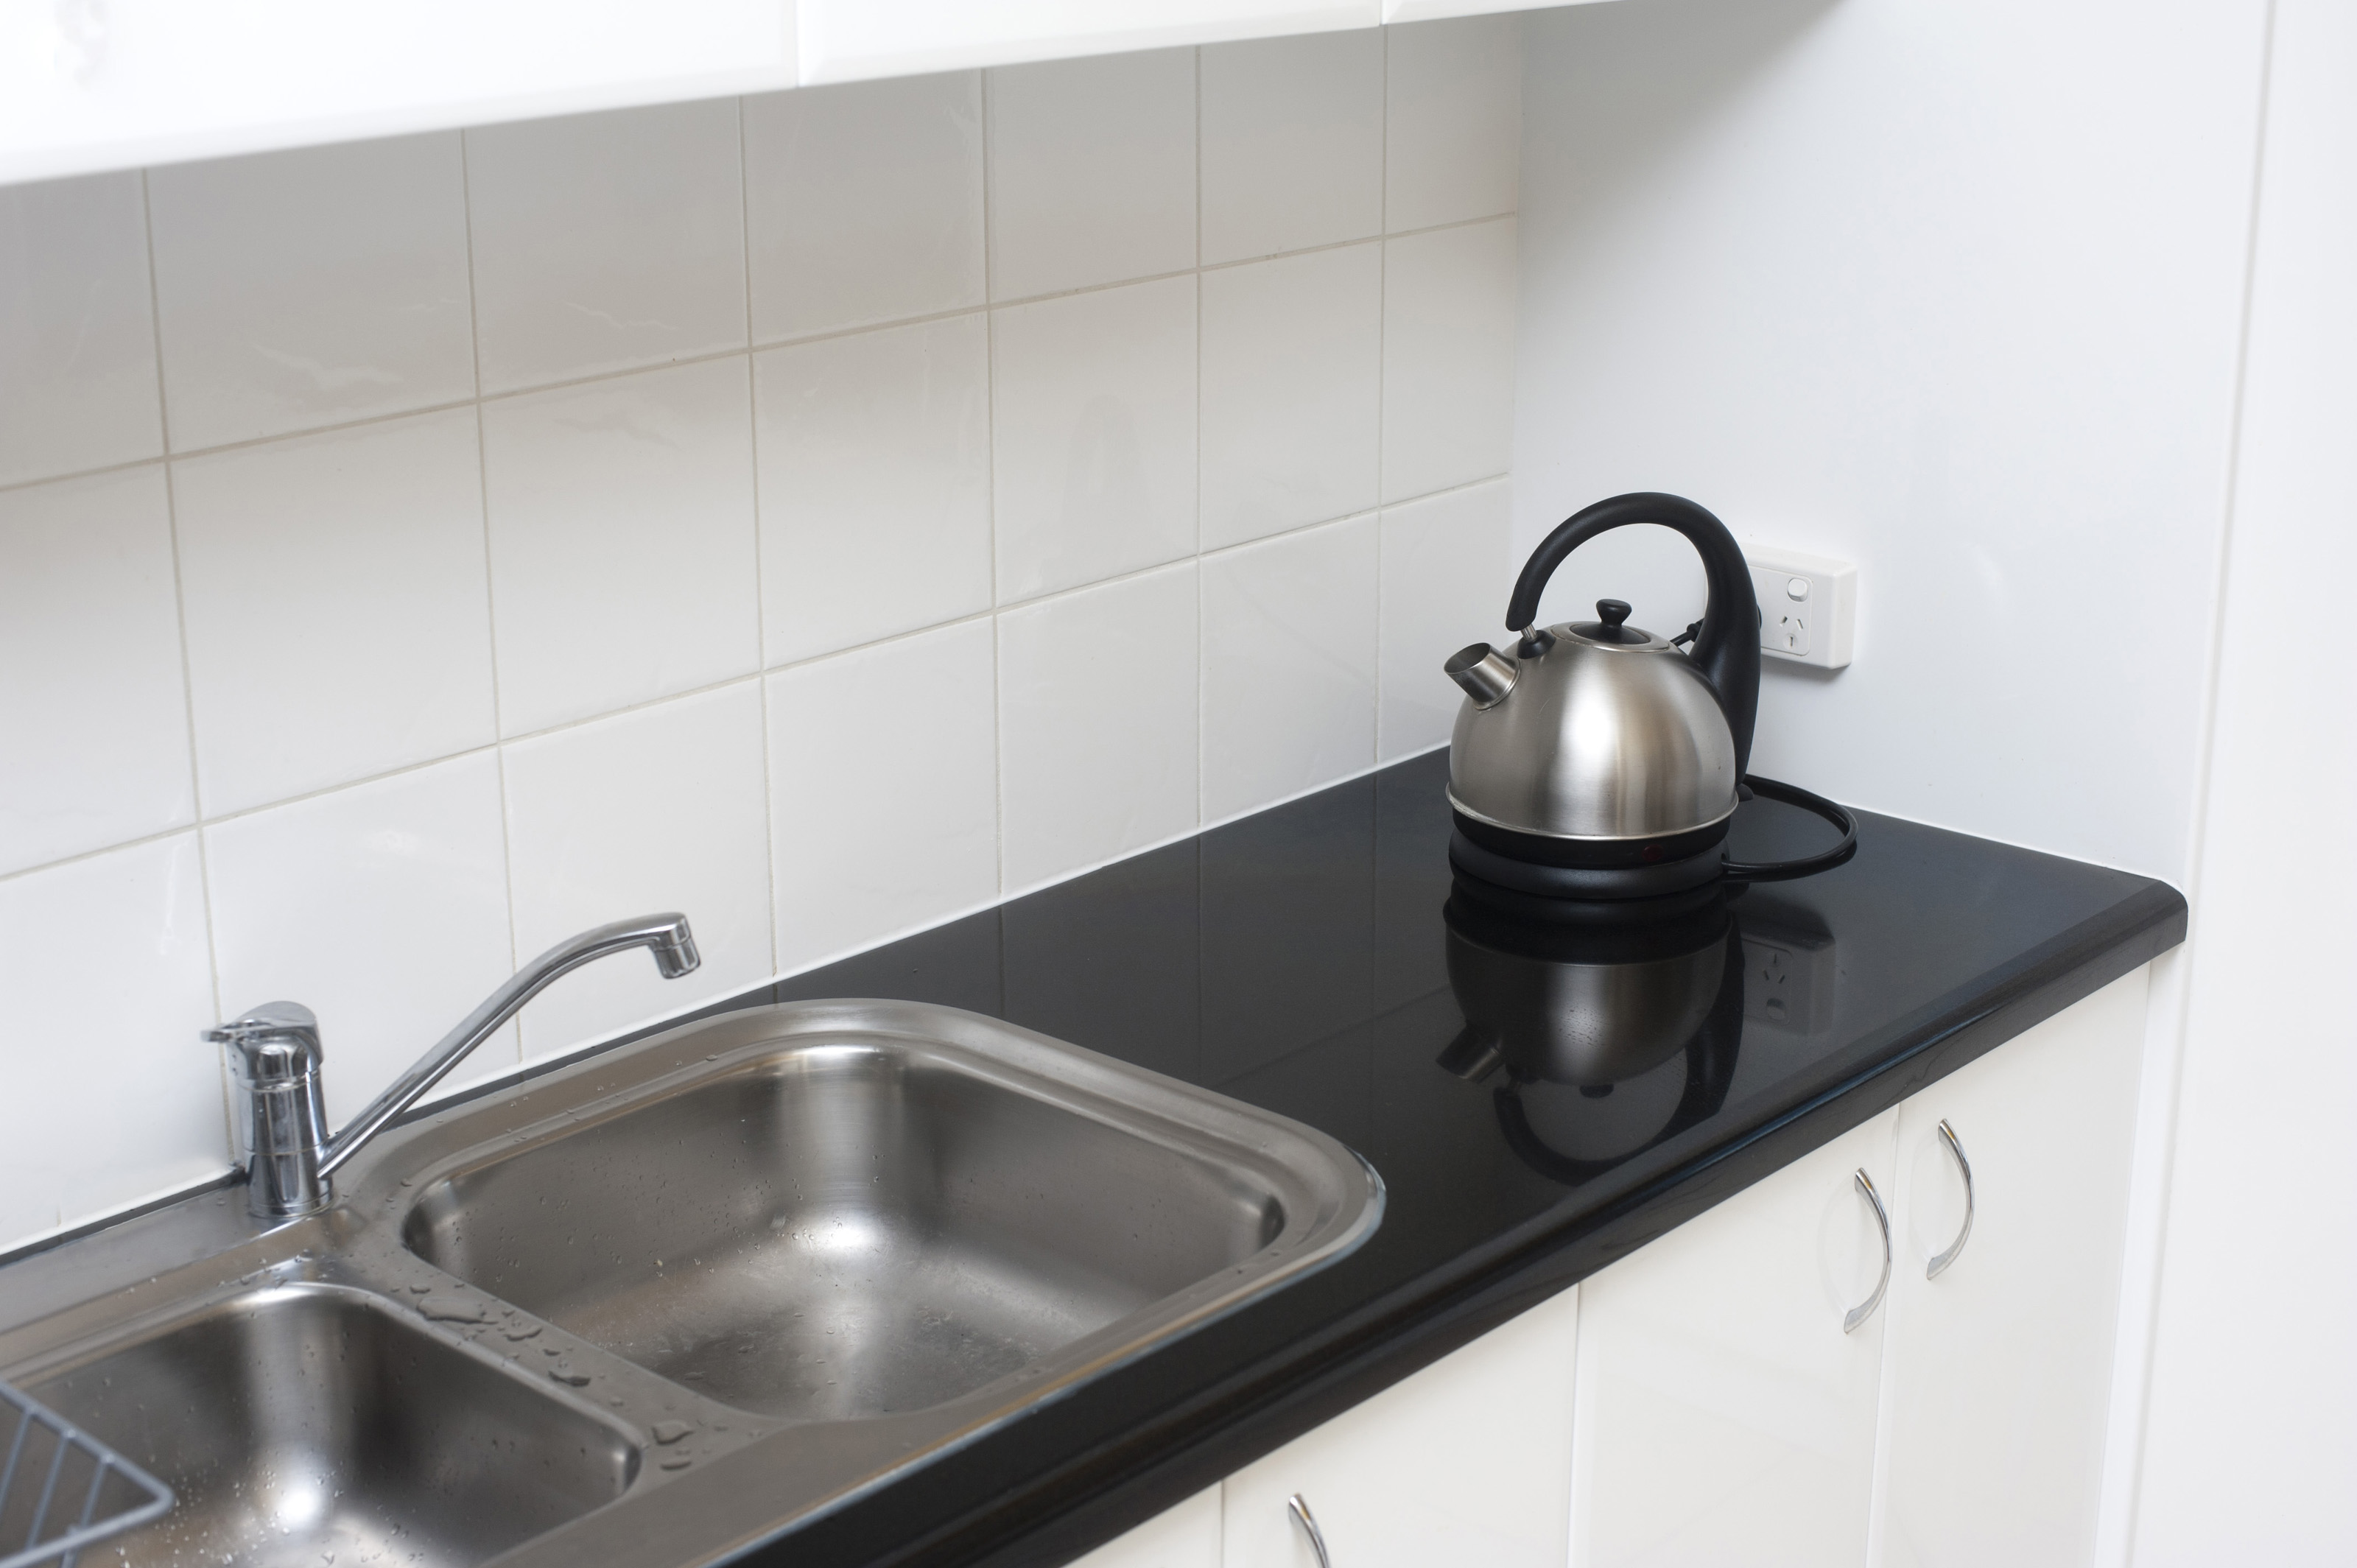 Simple Small kitchen with double stainless steel sink unit black countertop and white tiles as a